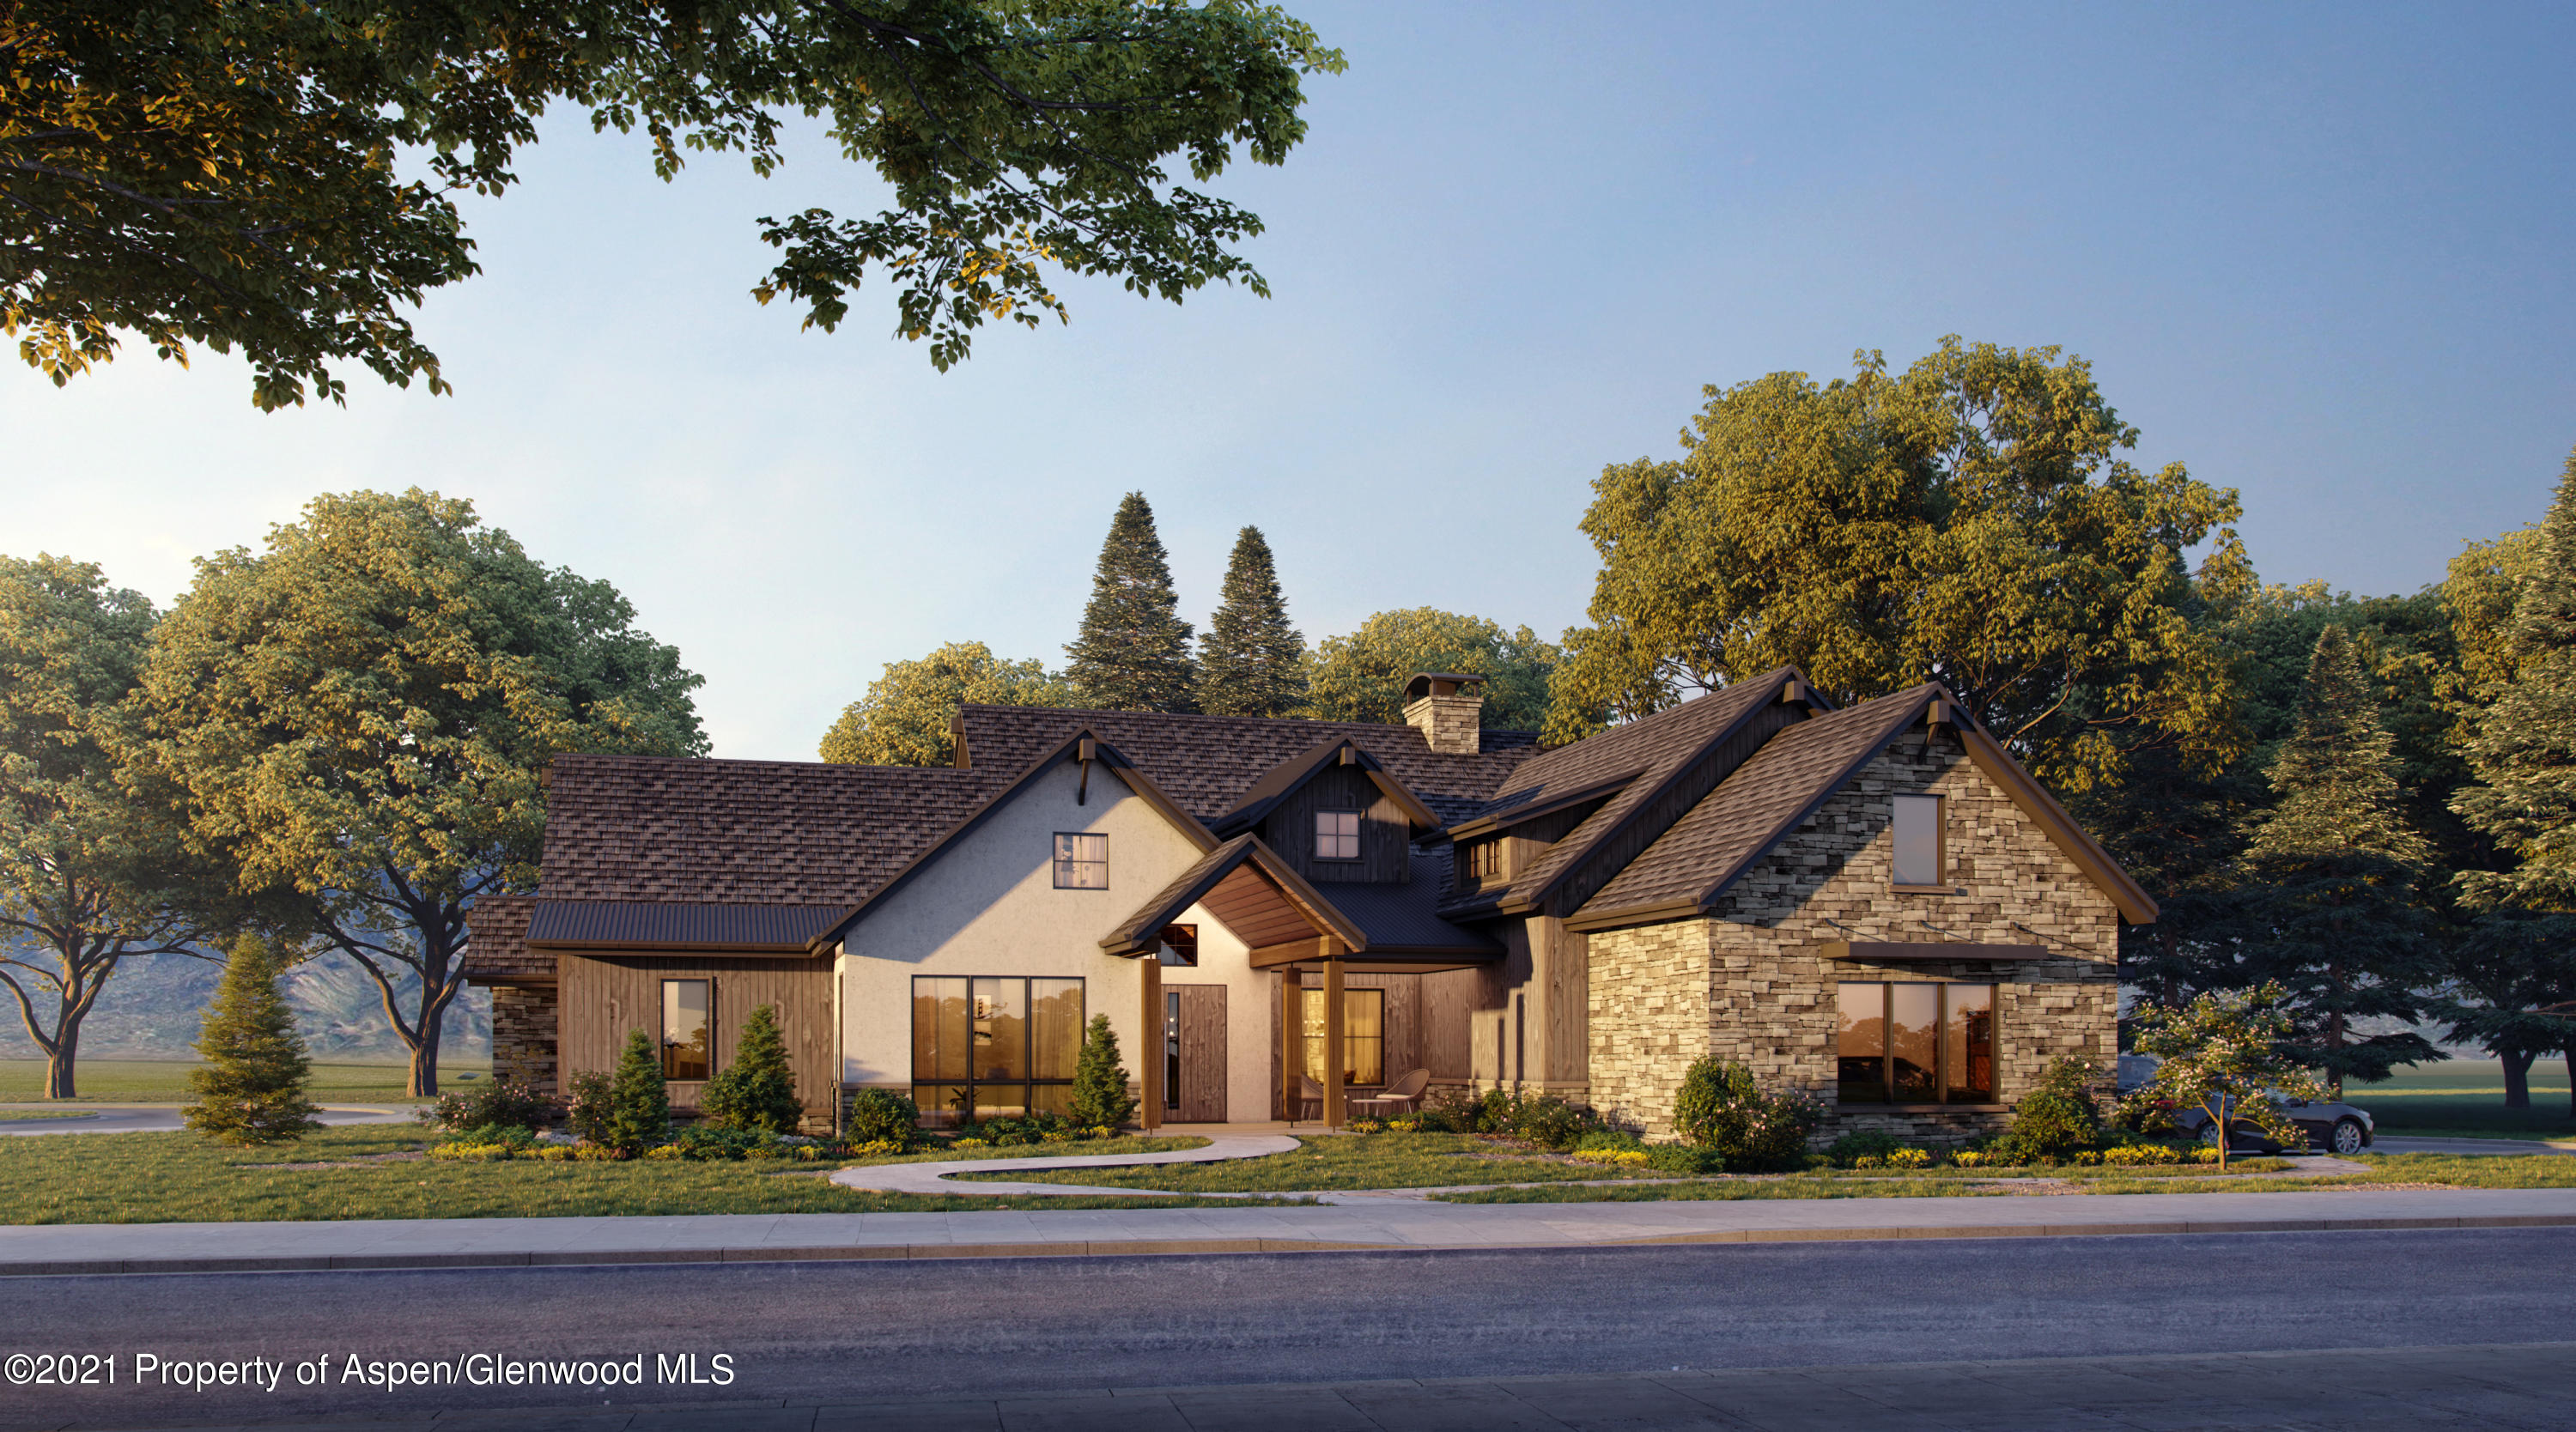 NEW RANCH STYLE HOME IN ASPEN GLEN!Imagine your family in this spacious, well-conceived custom home in a serene Aspen Glen location.  Meticulously hand-crafted with a balance of steel, stone and wood giving a timeless look and feel to this new masterpiece.  One-floor living features a grand master suite, with fireplace and southwestern views from inside and the adjoining patio.   Two more en-suite bedrooms are also on the main floor.   Living is effortless in the seamless kitchen, dining and grand-room areas, complemented by a second fireplace and a wall of windows opening to large patios, offering wonderful entertaining areas inside and out.   A three-car garage and a basement ready to finish complete this gorgeous home.